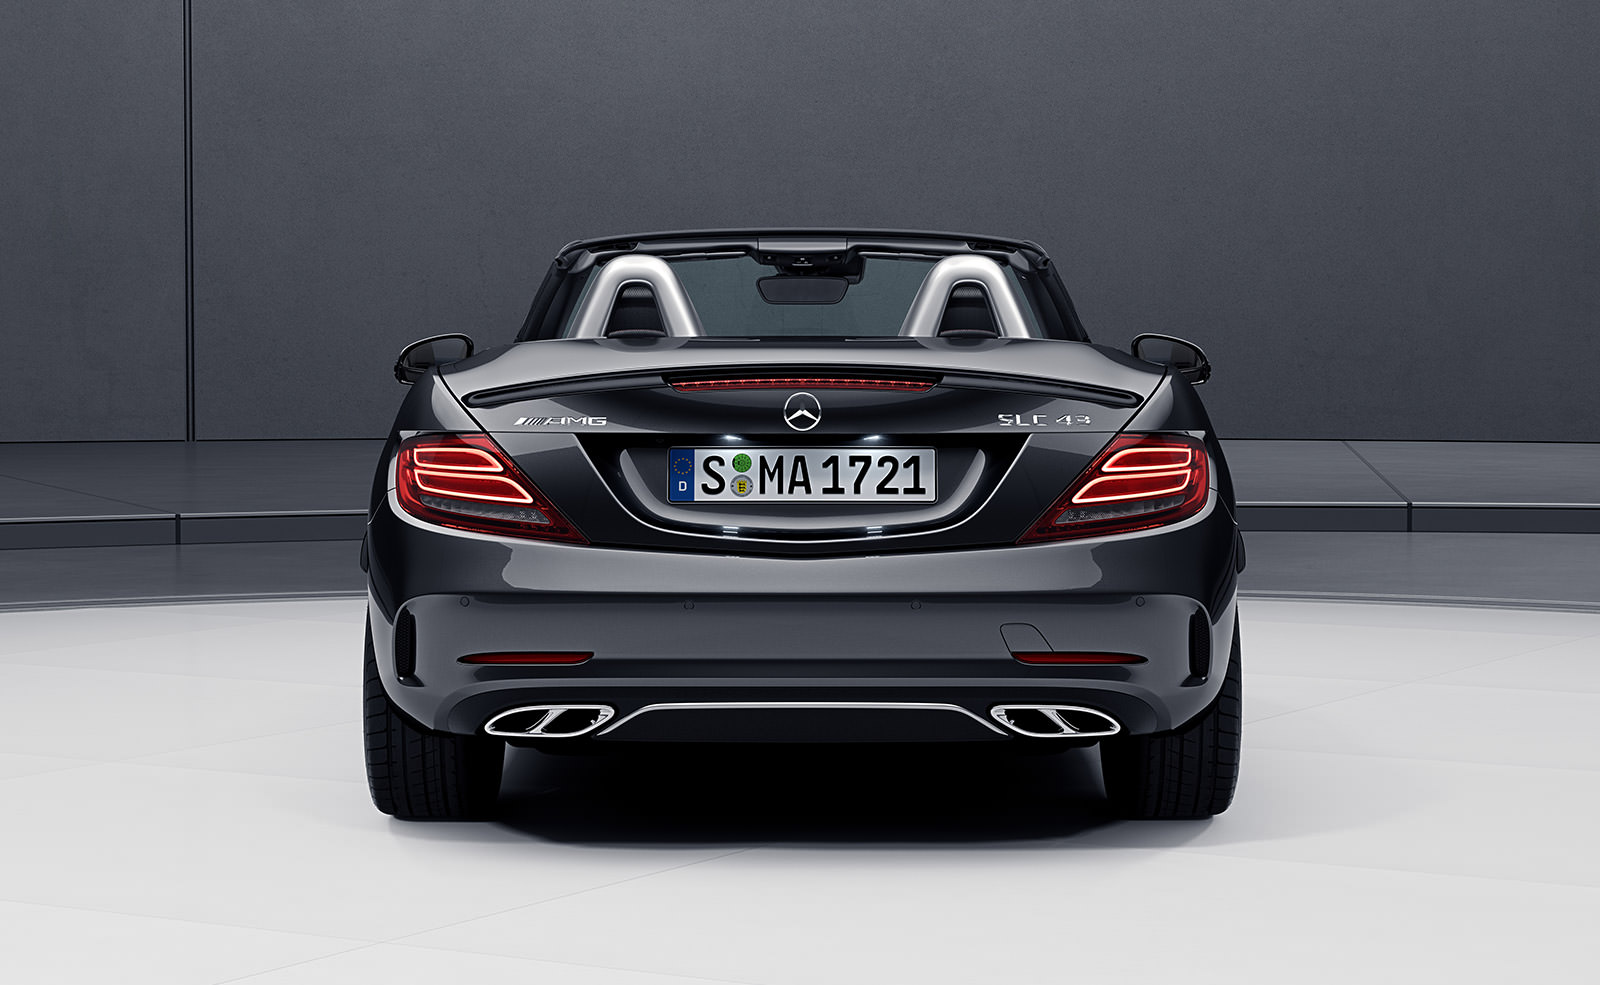 mercedes amg slc 43 india launch on july 26. Black Bedroom Furniture Sets. Home Design Ideas